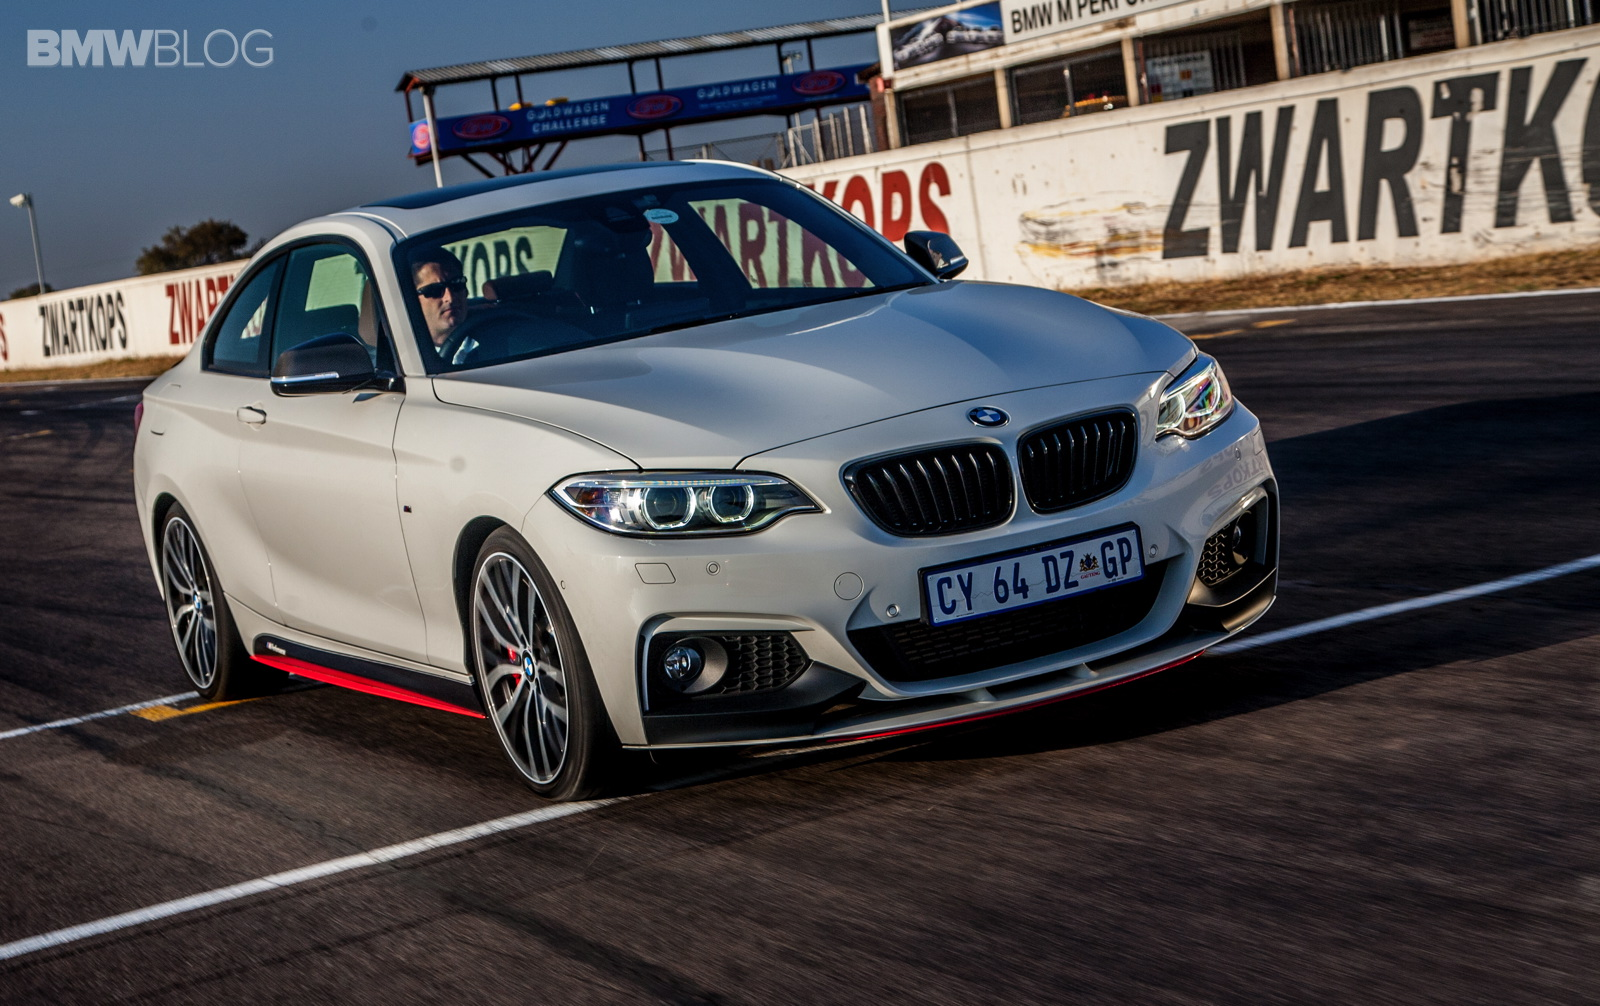 bmw m performance 2 series coupe 23